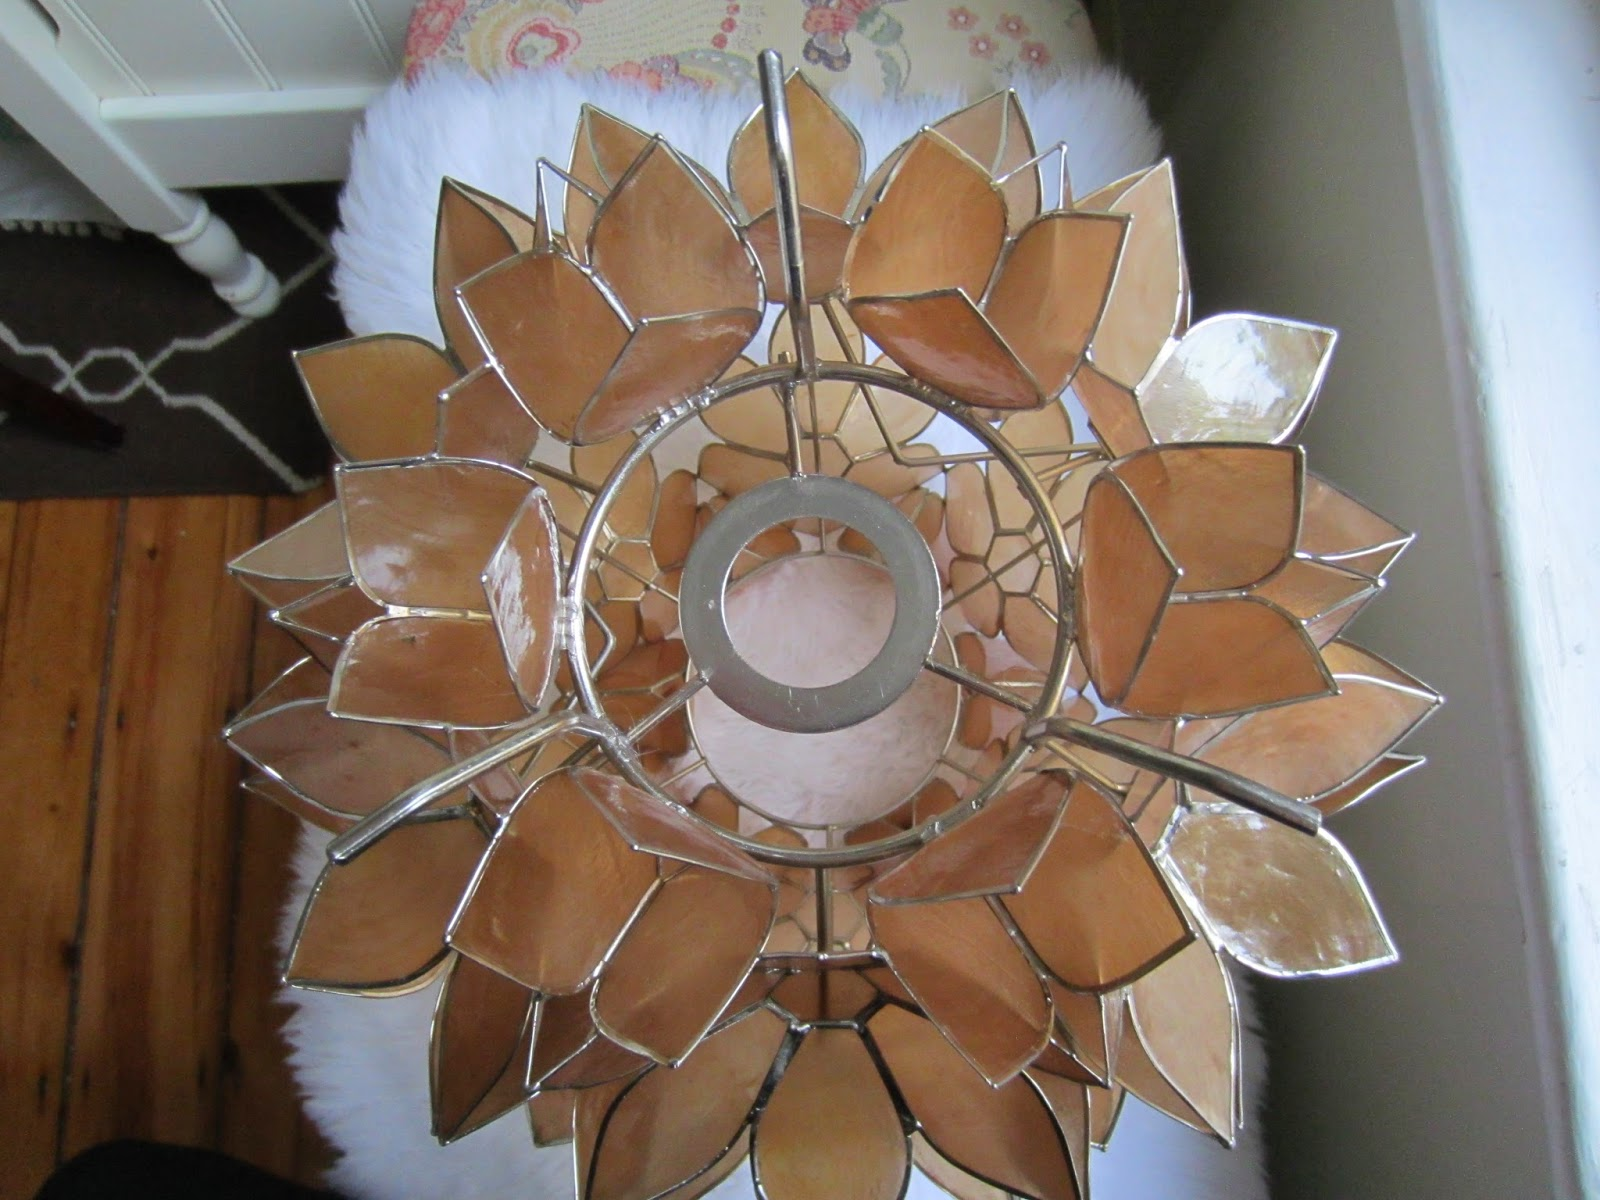 Capiz Flower Chandelier DIY / The Twisted Horn